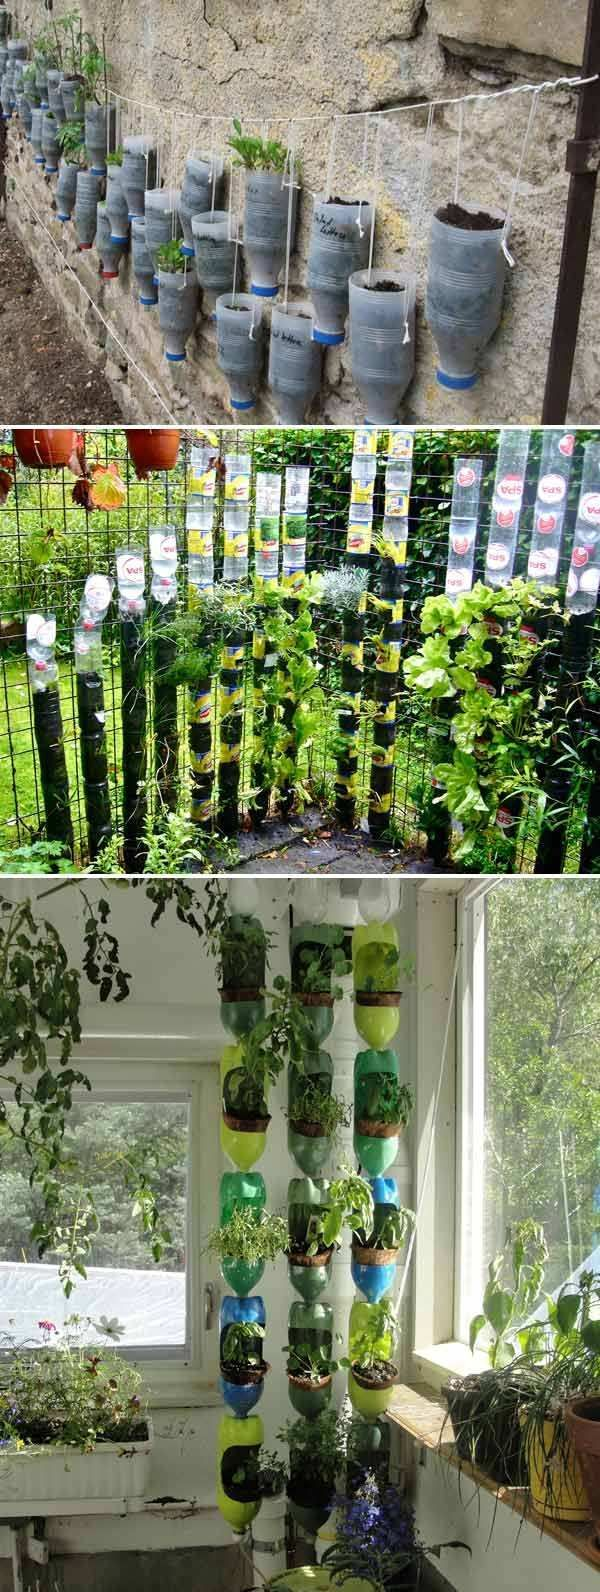 29+ Clever Plastic Bottle Vertical Garden Ideas - FarmFoodFamily,  #BOTTLE #Clever #creativeg... #verticalgarden